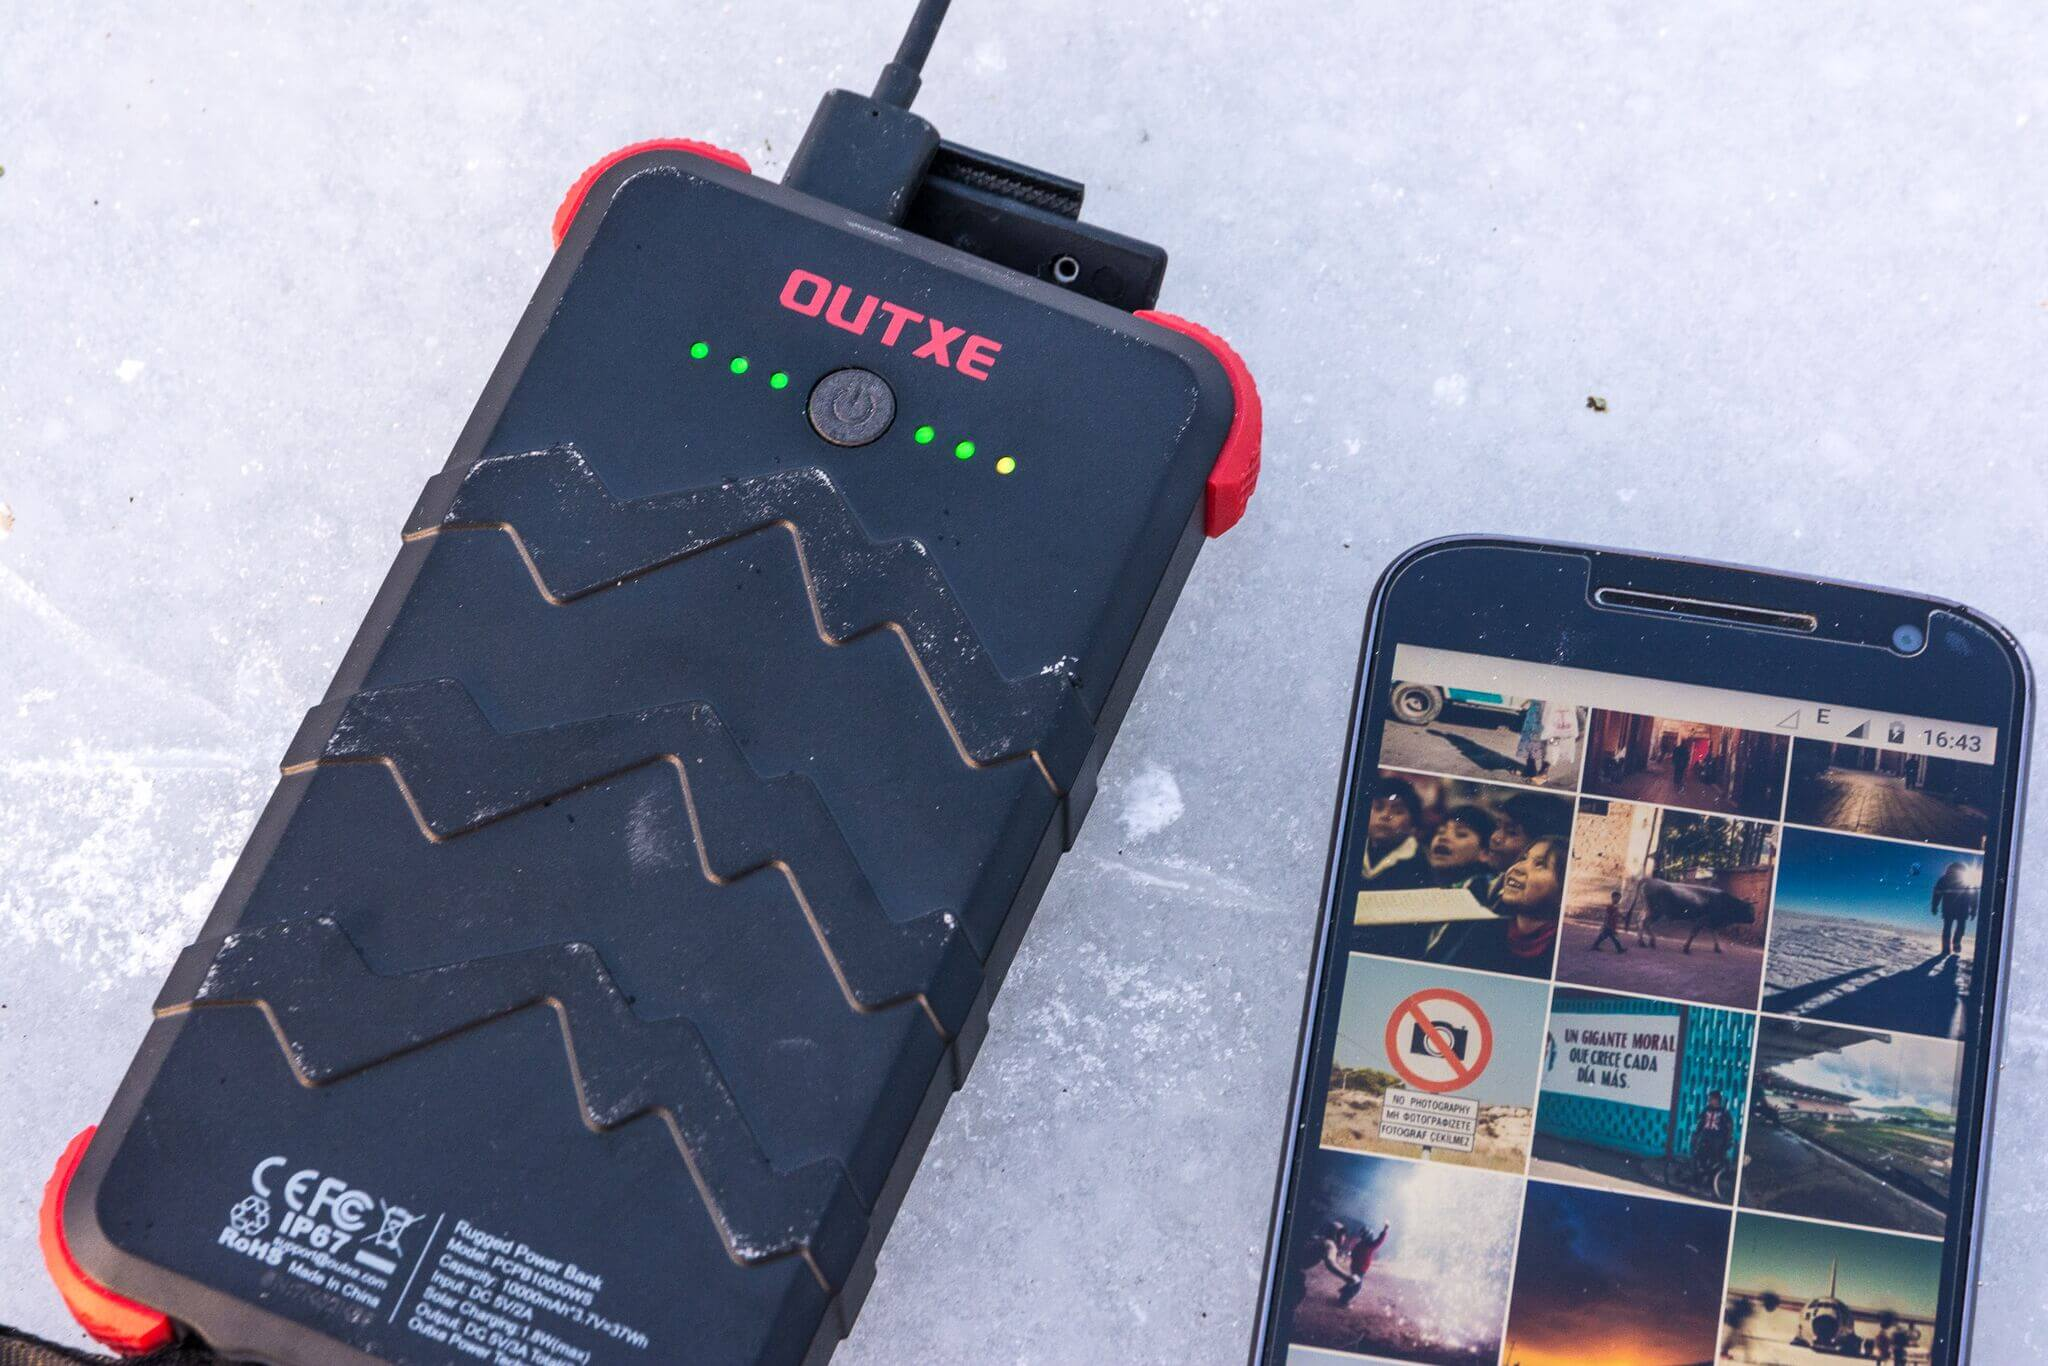 OUTXE Savage Power Bank 10000mAh - An Outdoor Battery for Rough Tour in the Field